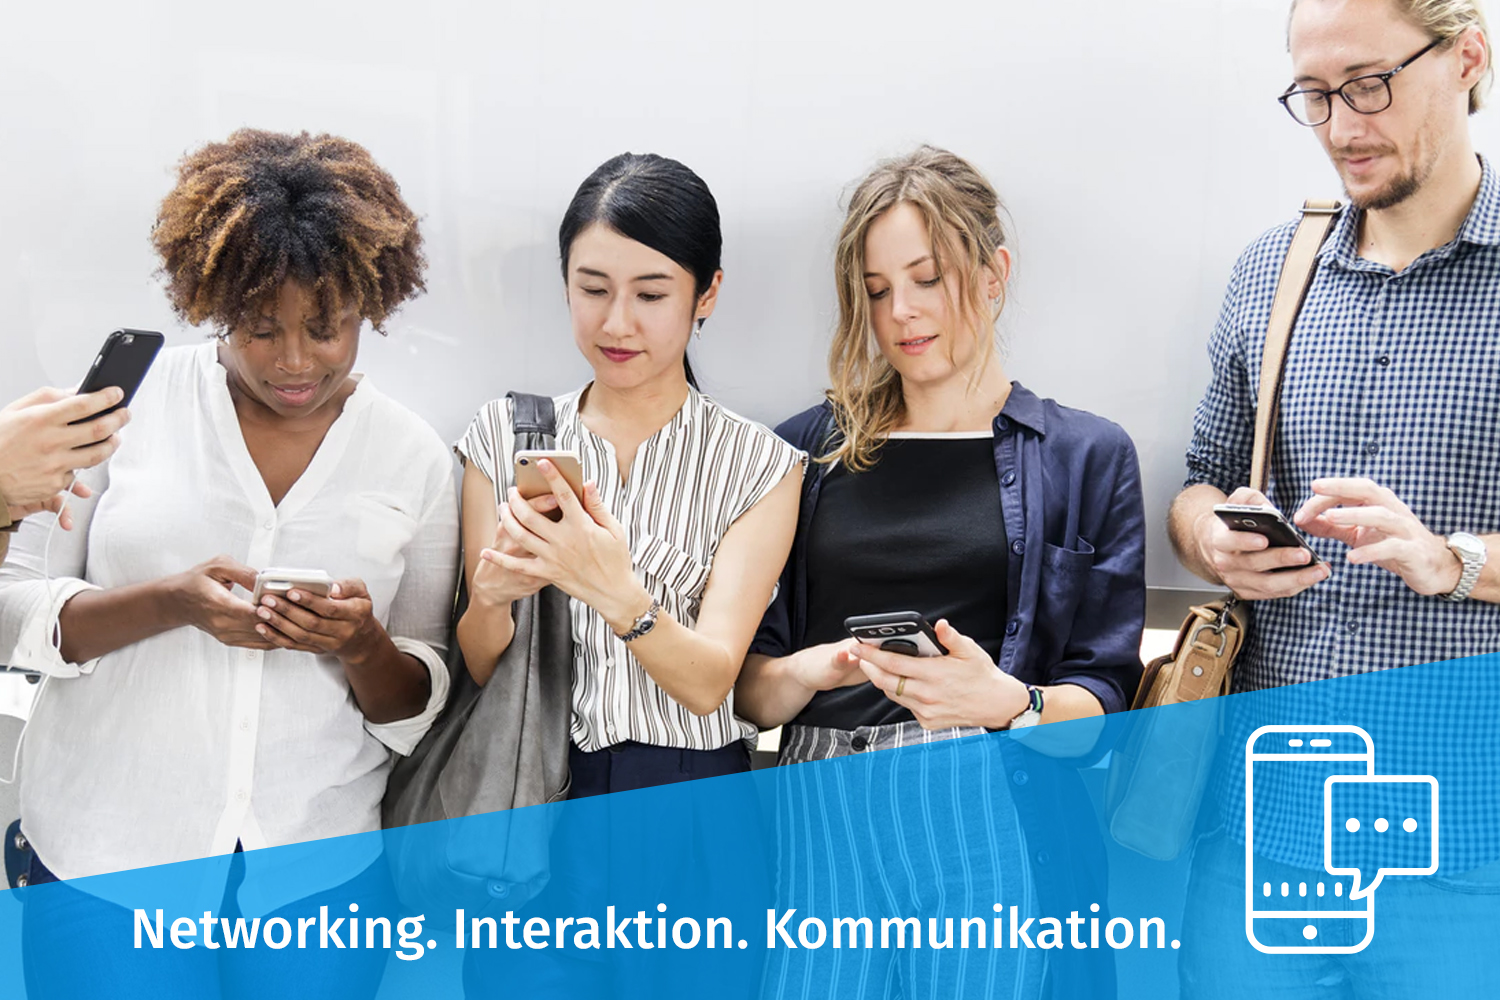 Networking. Interaktion. Kommunikation.